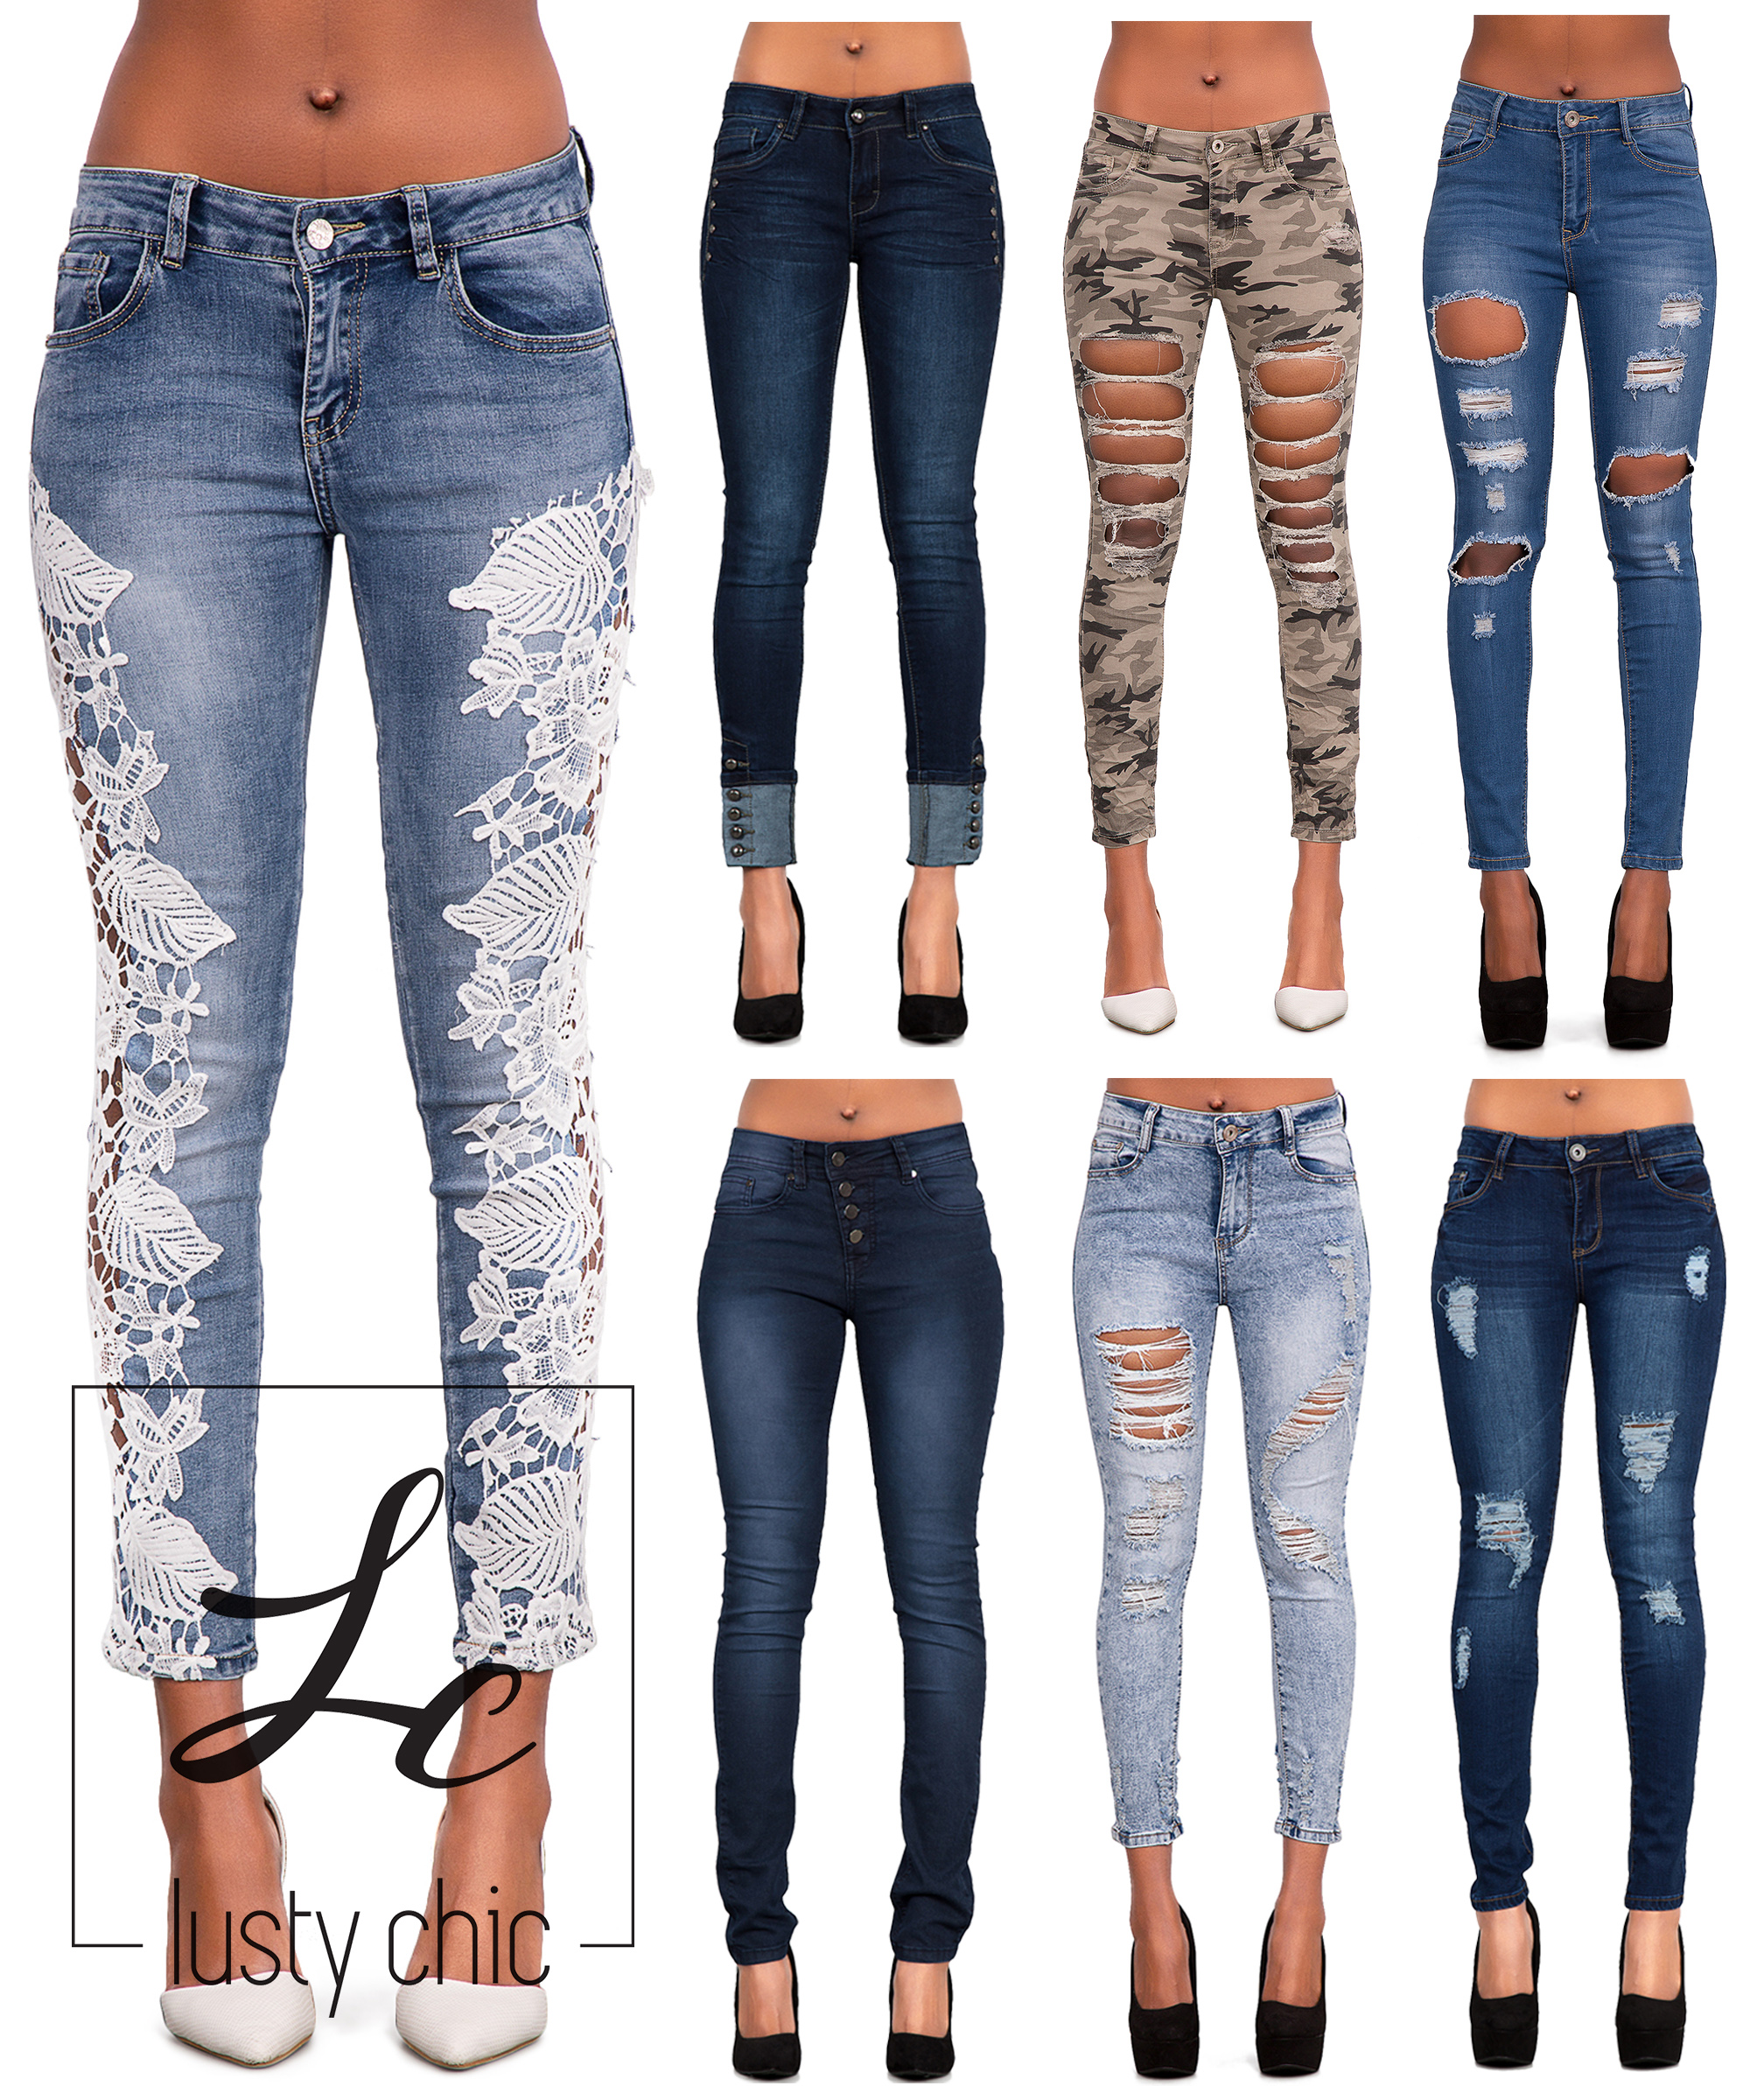 Womens Light Denim Jeans | eBay